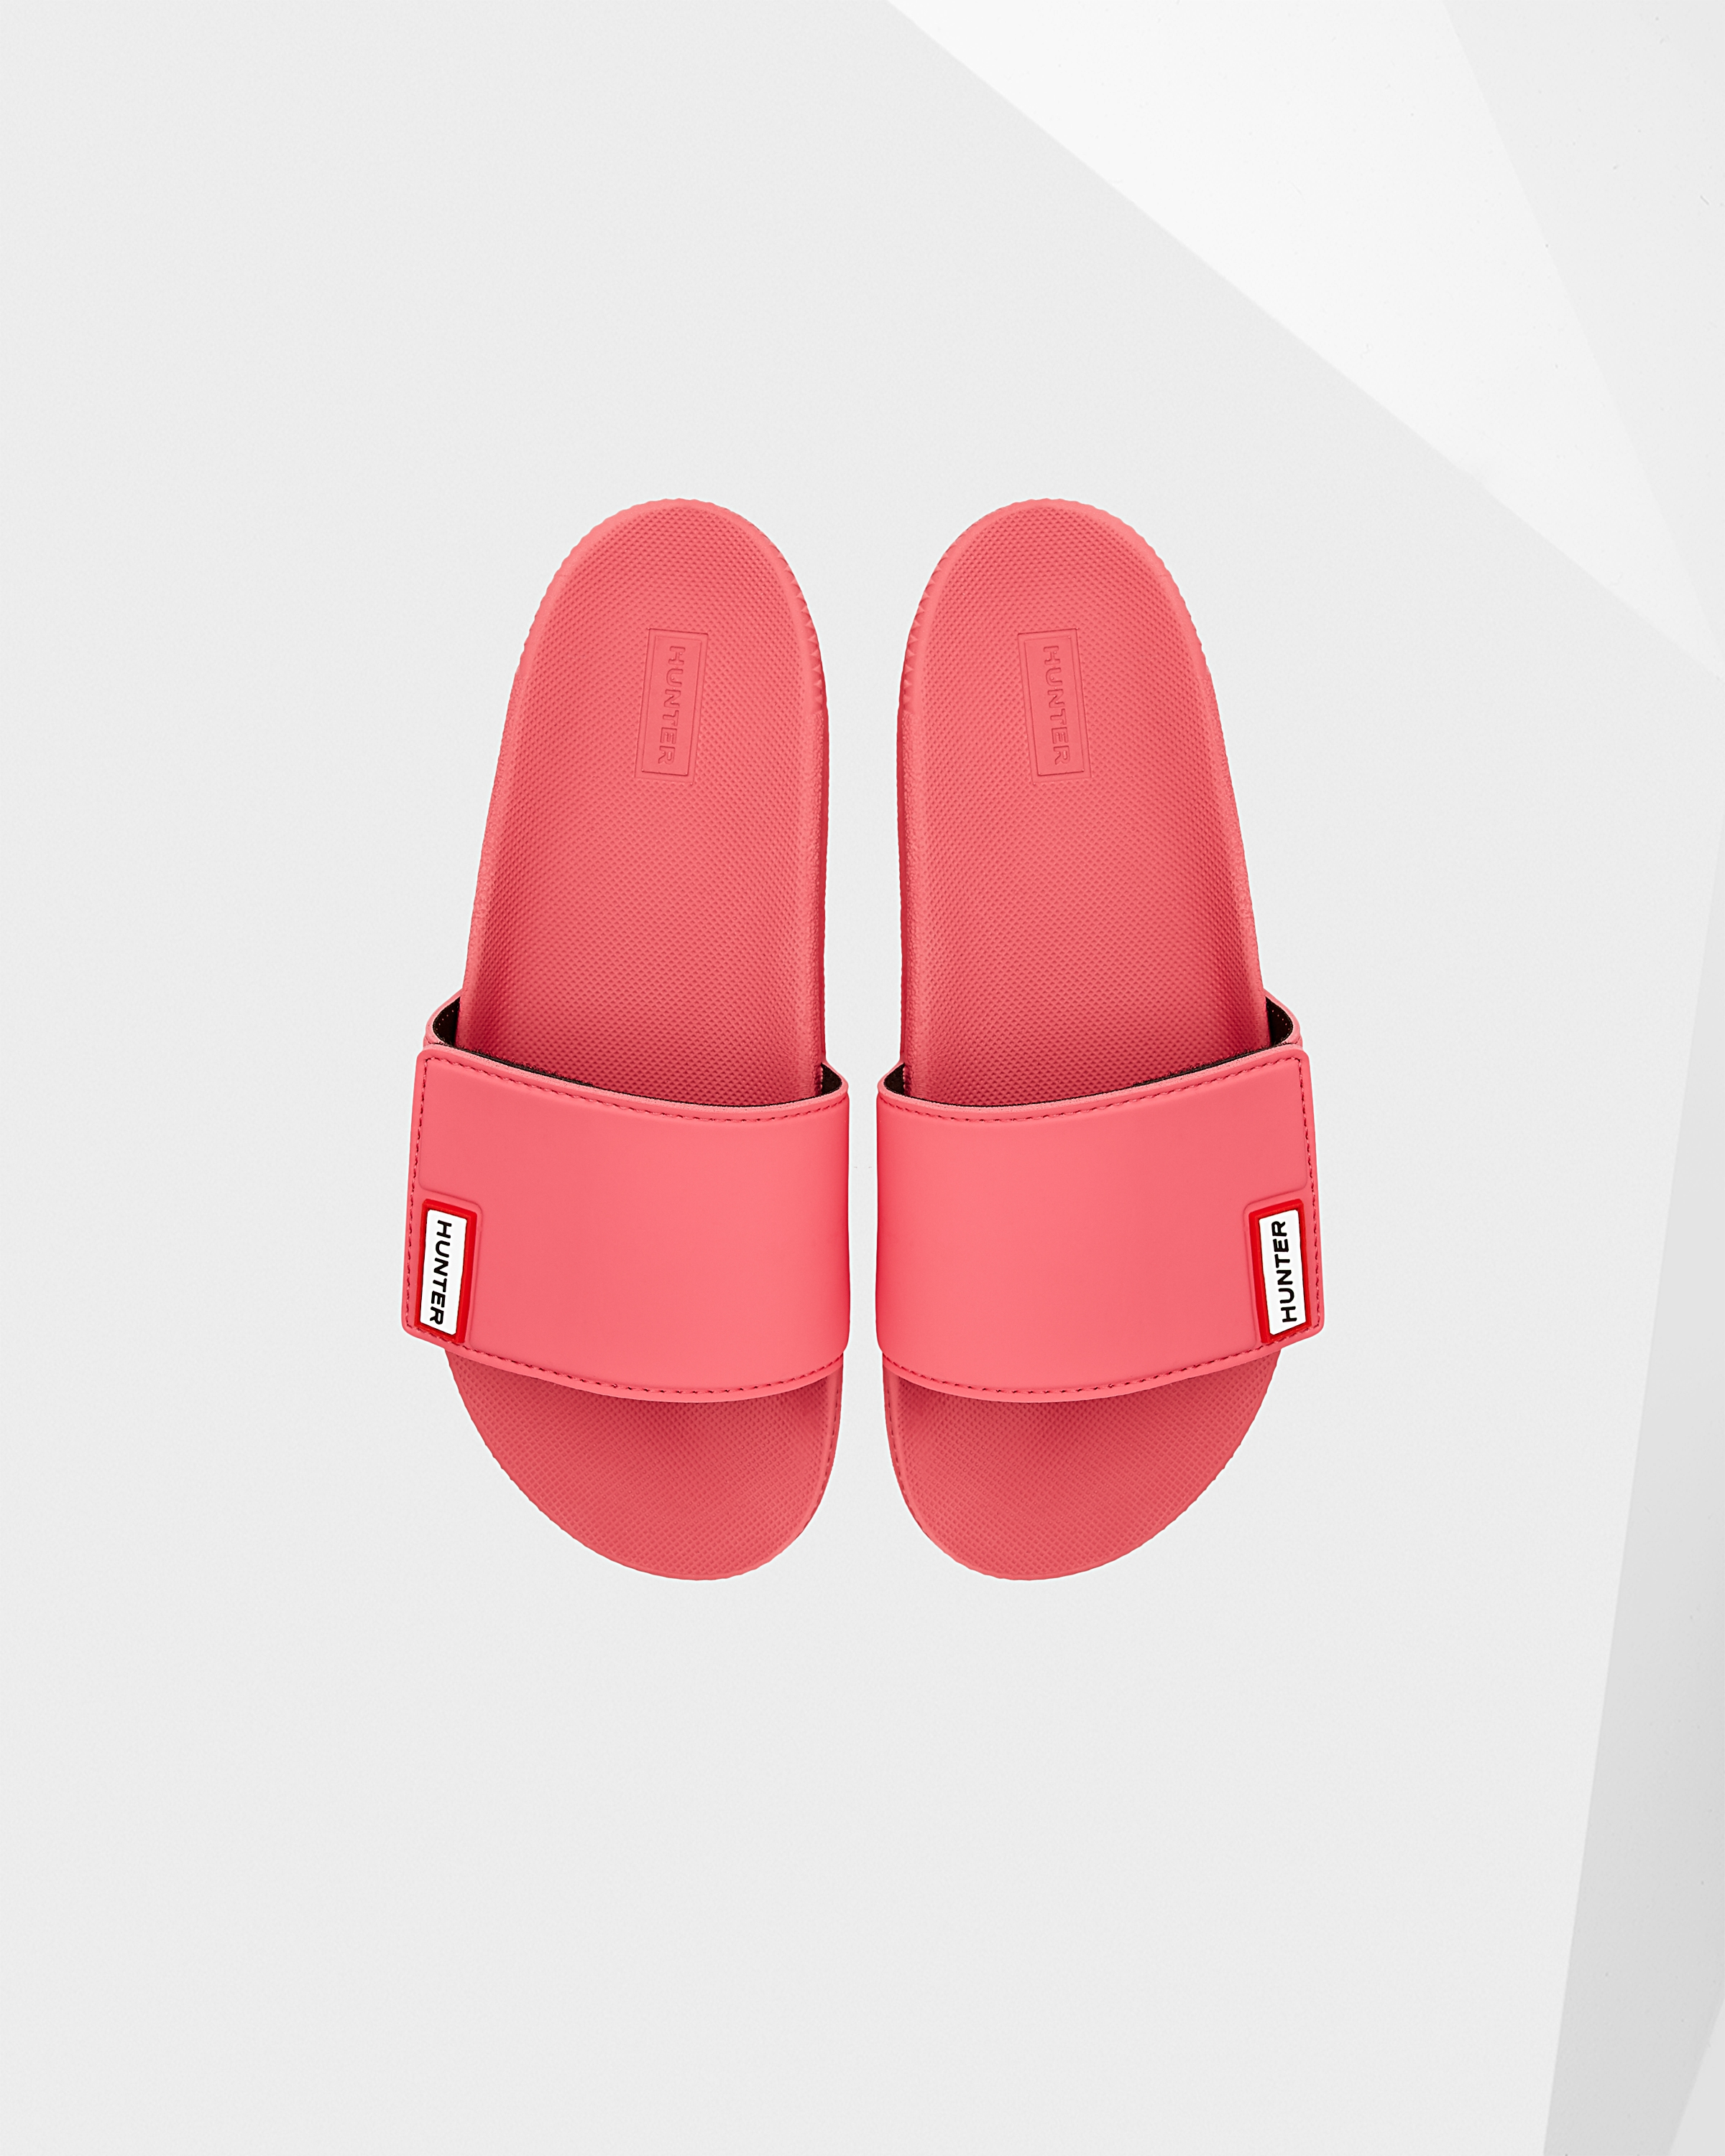 72bd557ef Womens Pink Adjustable Slides | Official Hunter Boots Store